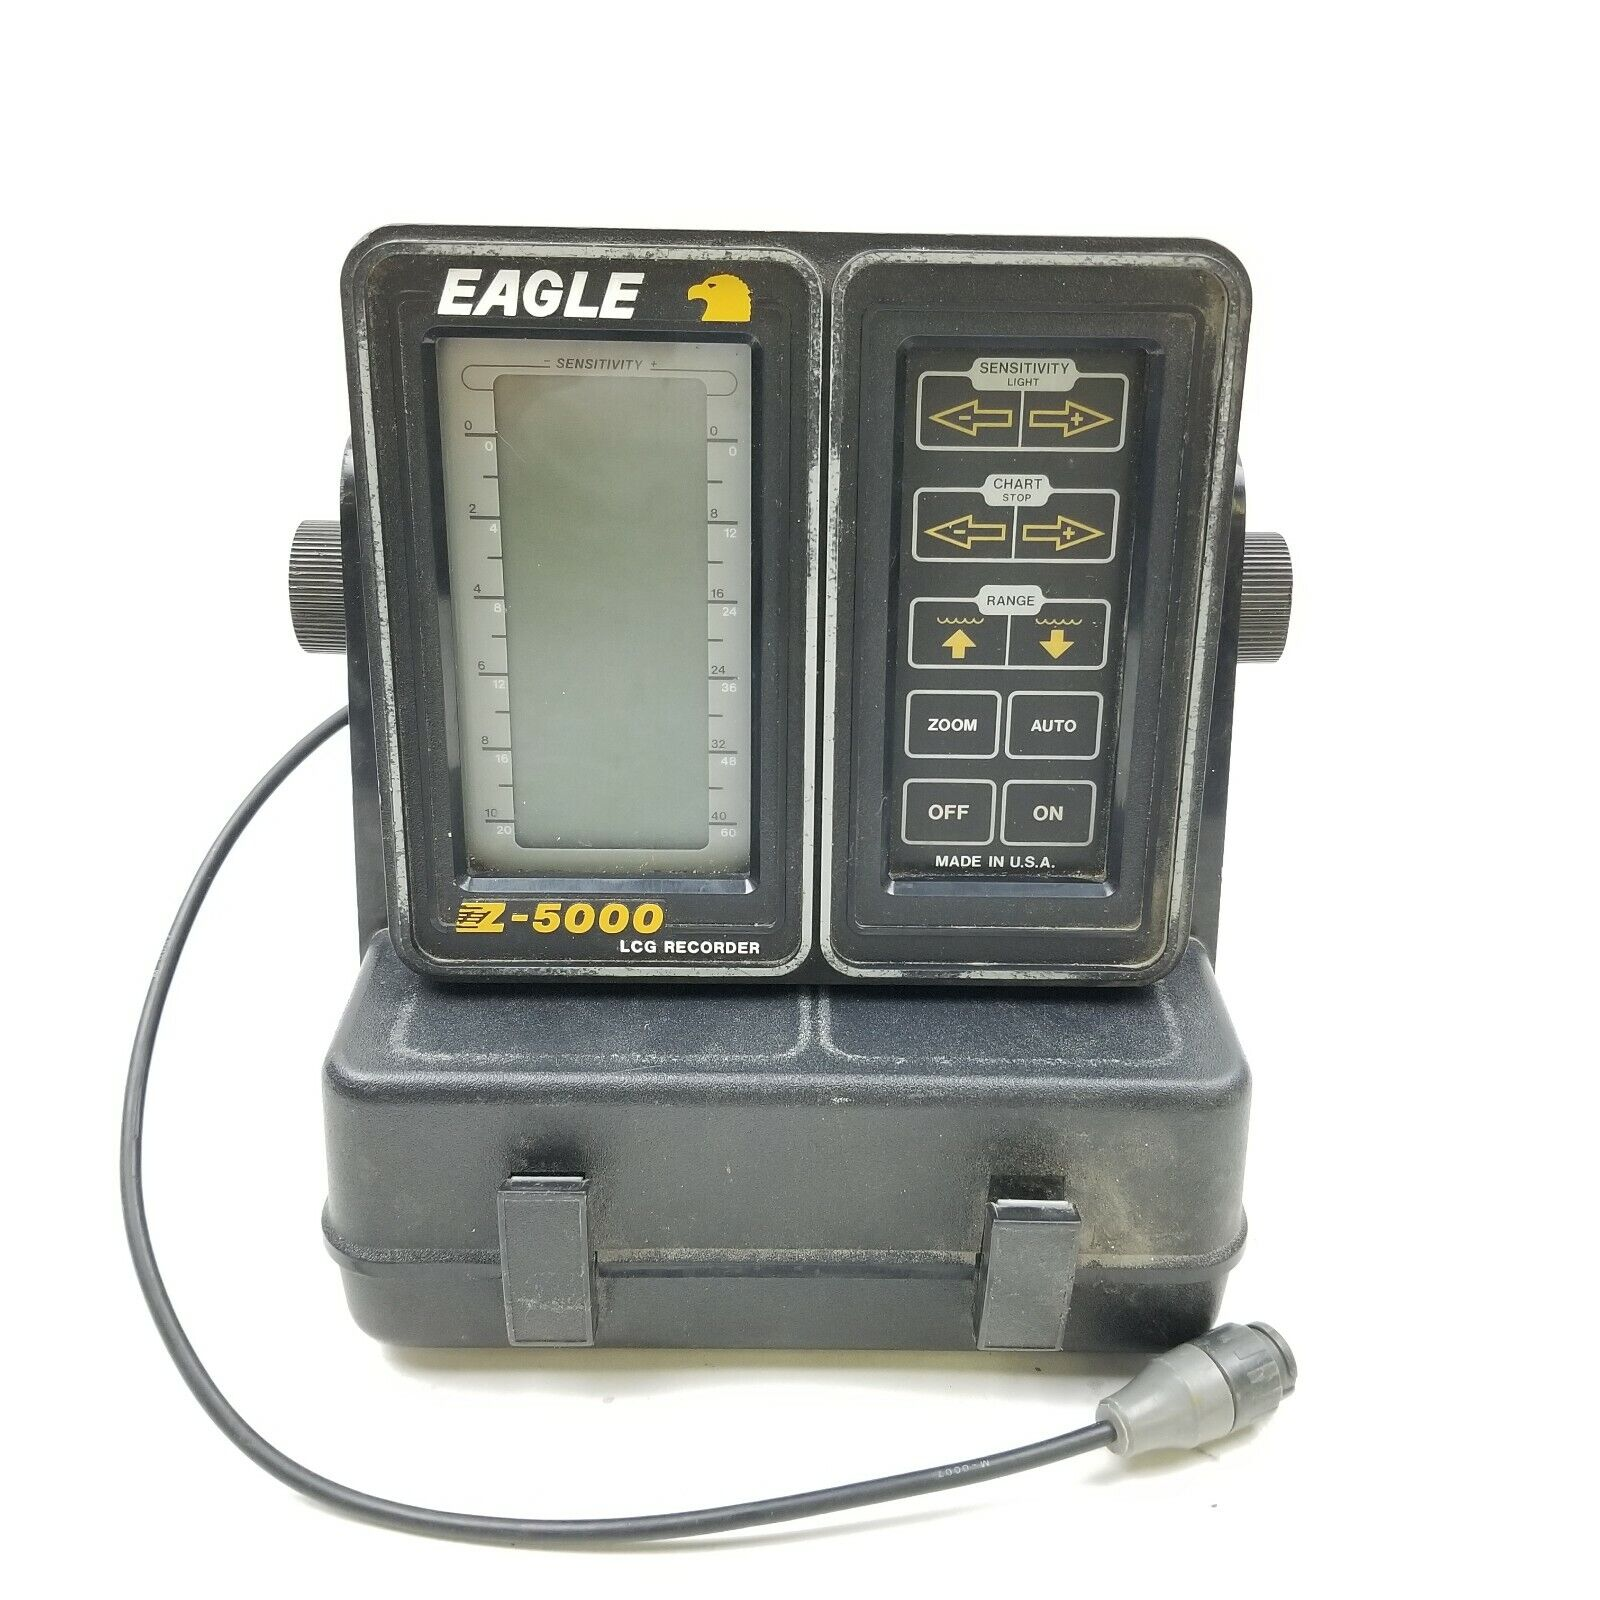 Eagle Z-5000 LCG Recorder Depth  Fish Finder With Base  for sale